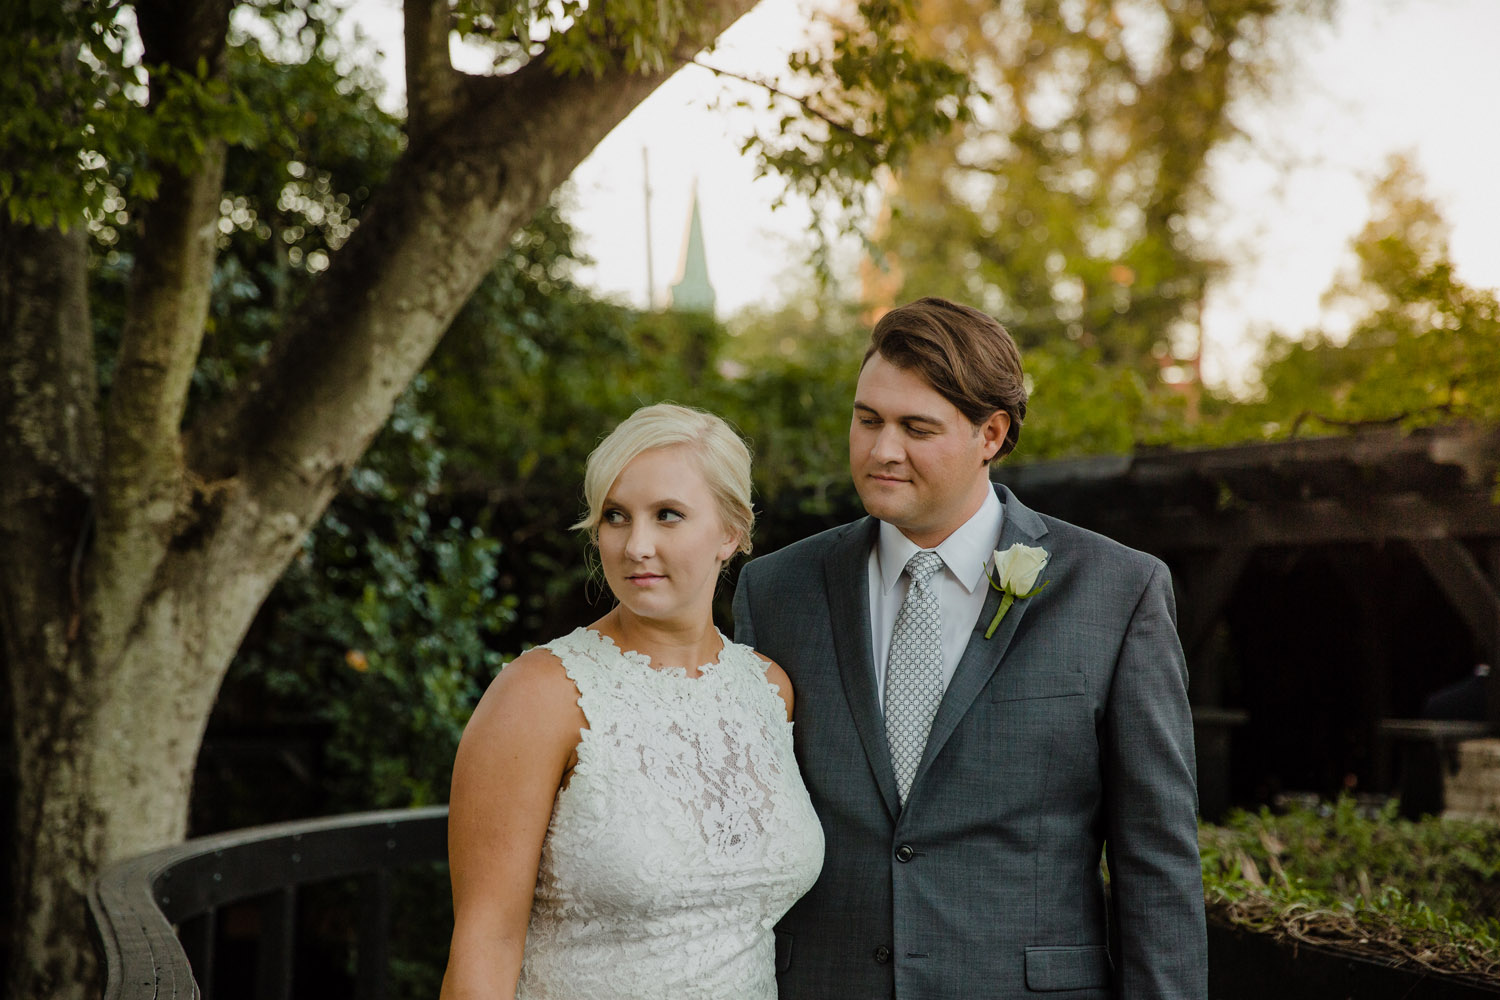 Atlanta Wedding Photographers Savannah Elopement Photographer Destination Photography_1040.jpg